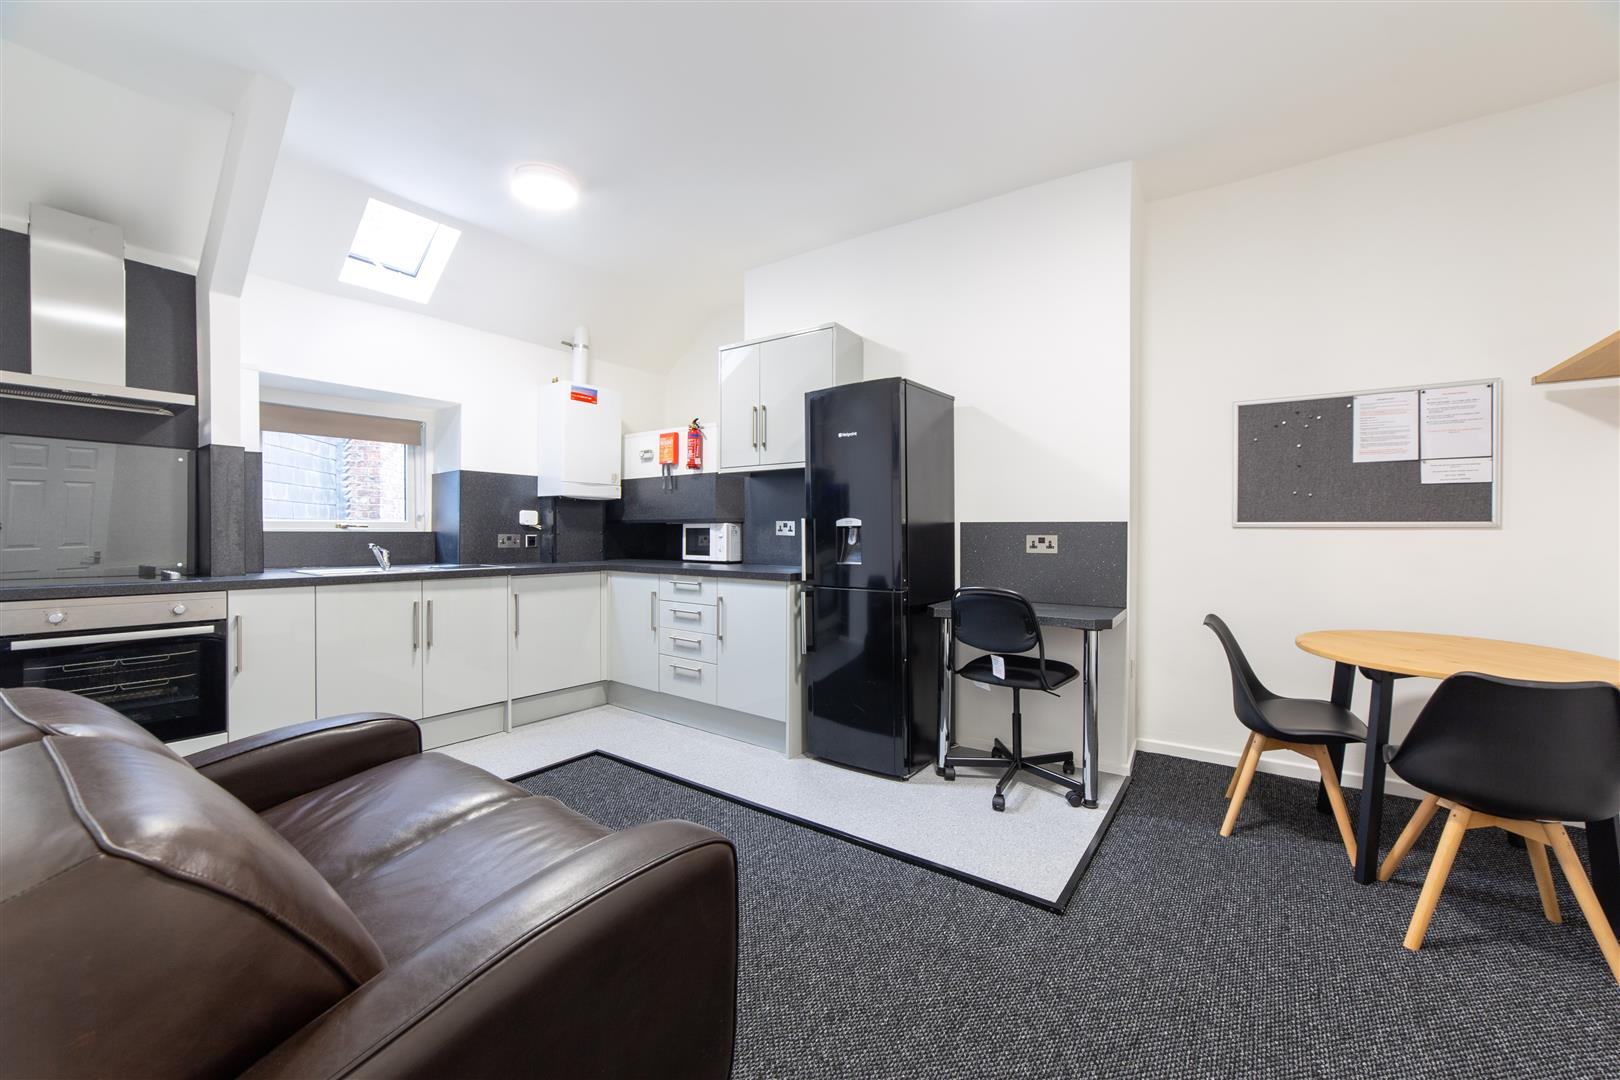 1 bed apartment to rent in Newcastle Upon Tyne, NE1 4PF, NE1